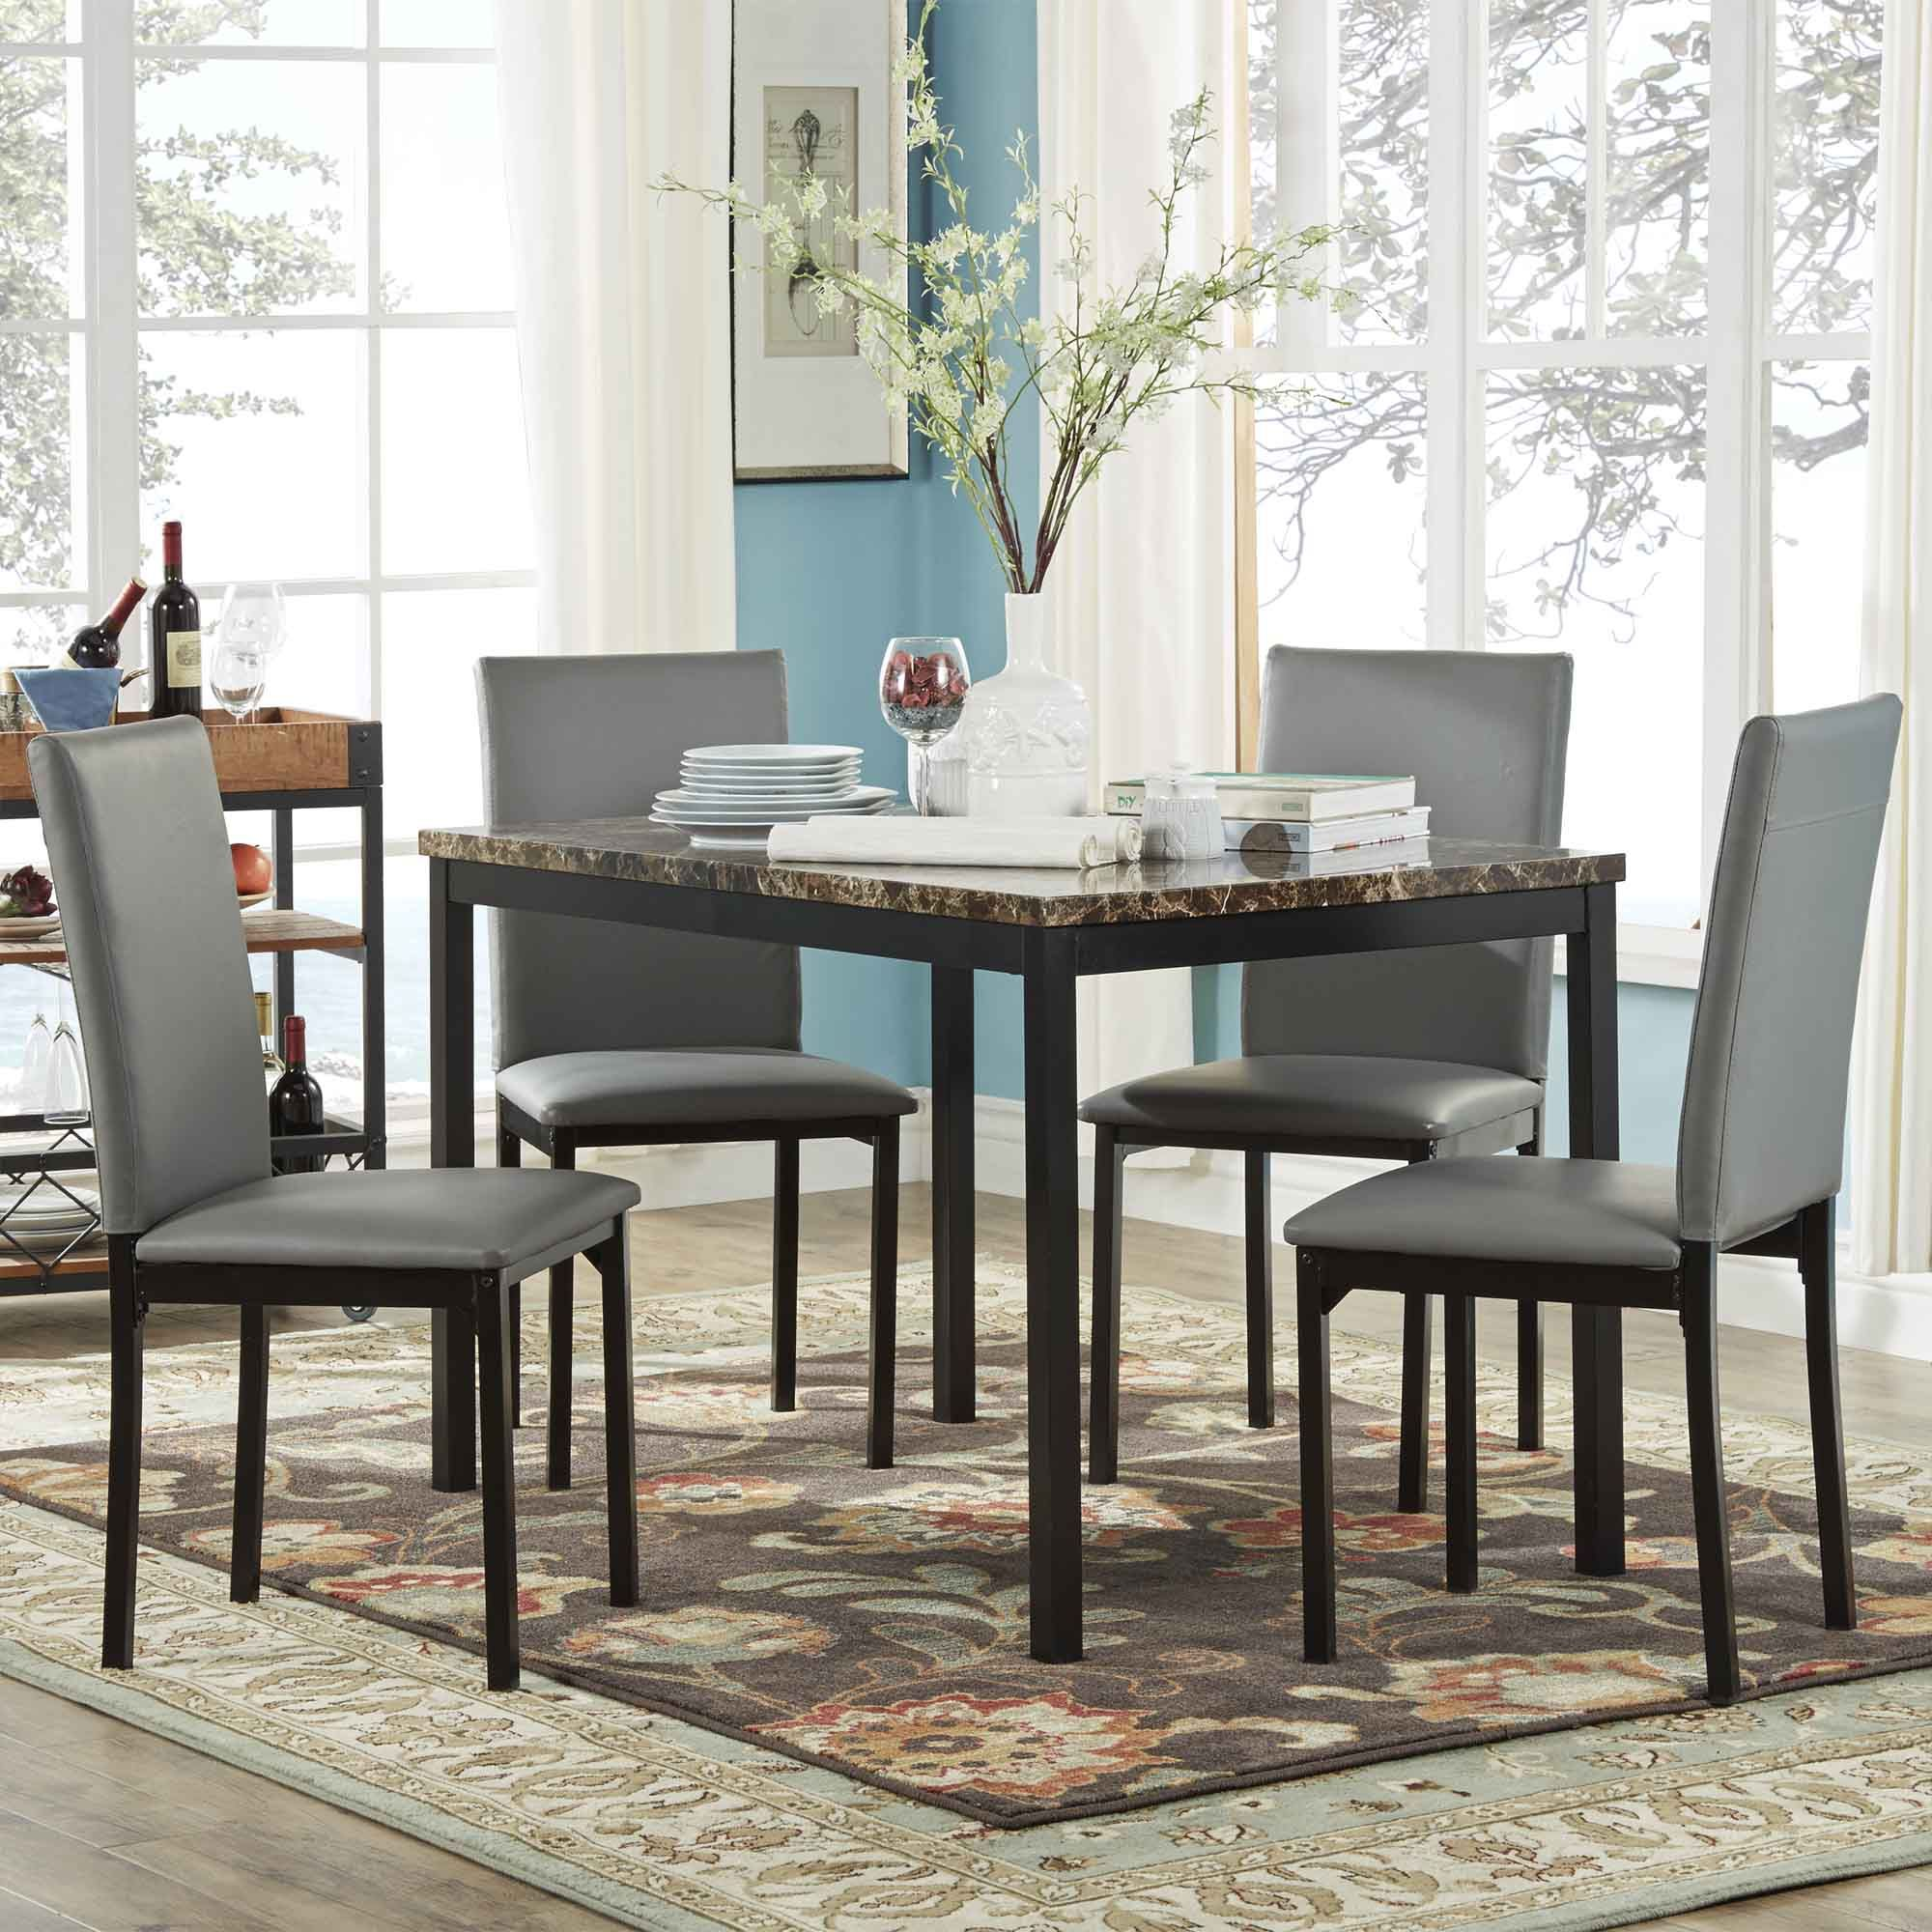 Ordinaire Oxford Creek Mio Faux Marble 5 Piece Casual Dining Set, Black